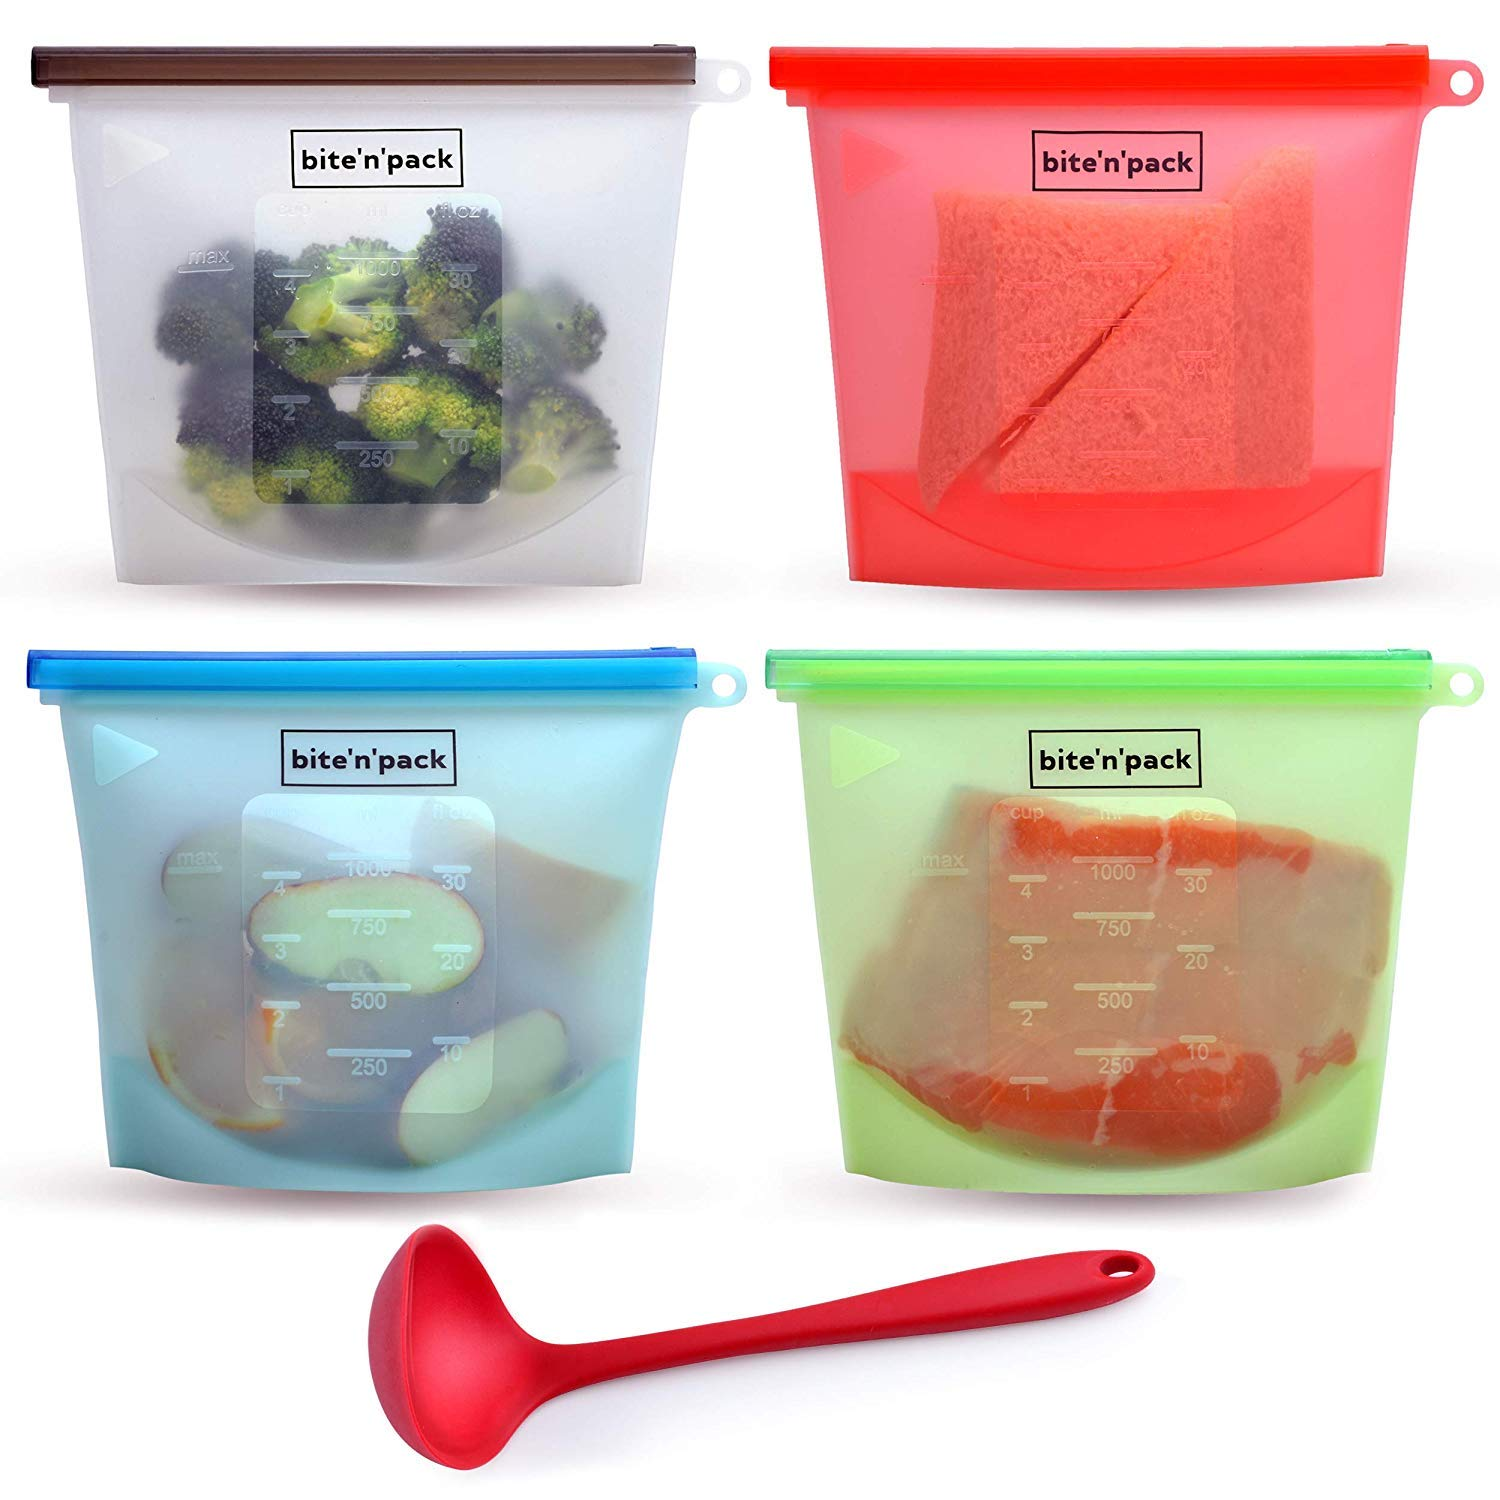 ddc2a6ed36f bite'n'pack Reusable Silicone Food Bag - Set of 4 + 1 GIFT LADLE to  Store/Boil/Freeze/Heat/Sous Vide Food | Leakproof with Airtight Seal |  Microwave Freezer ...